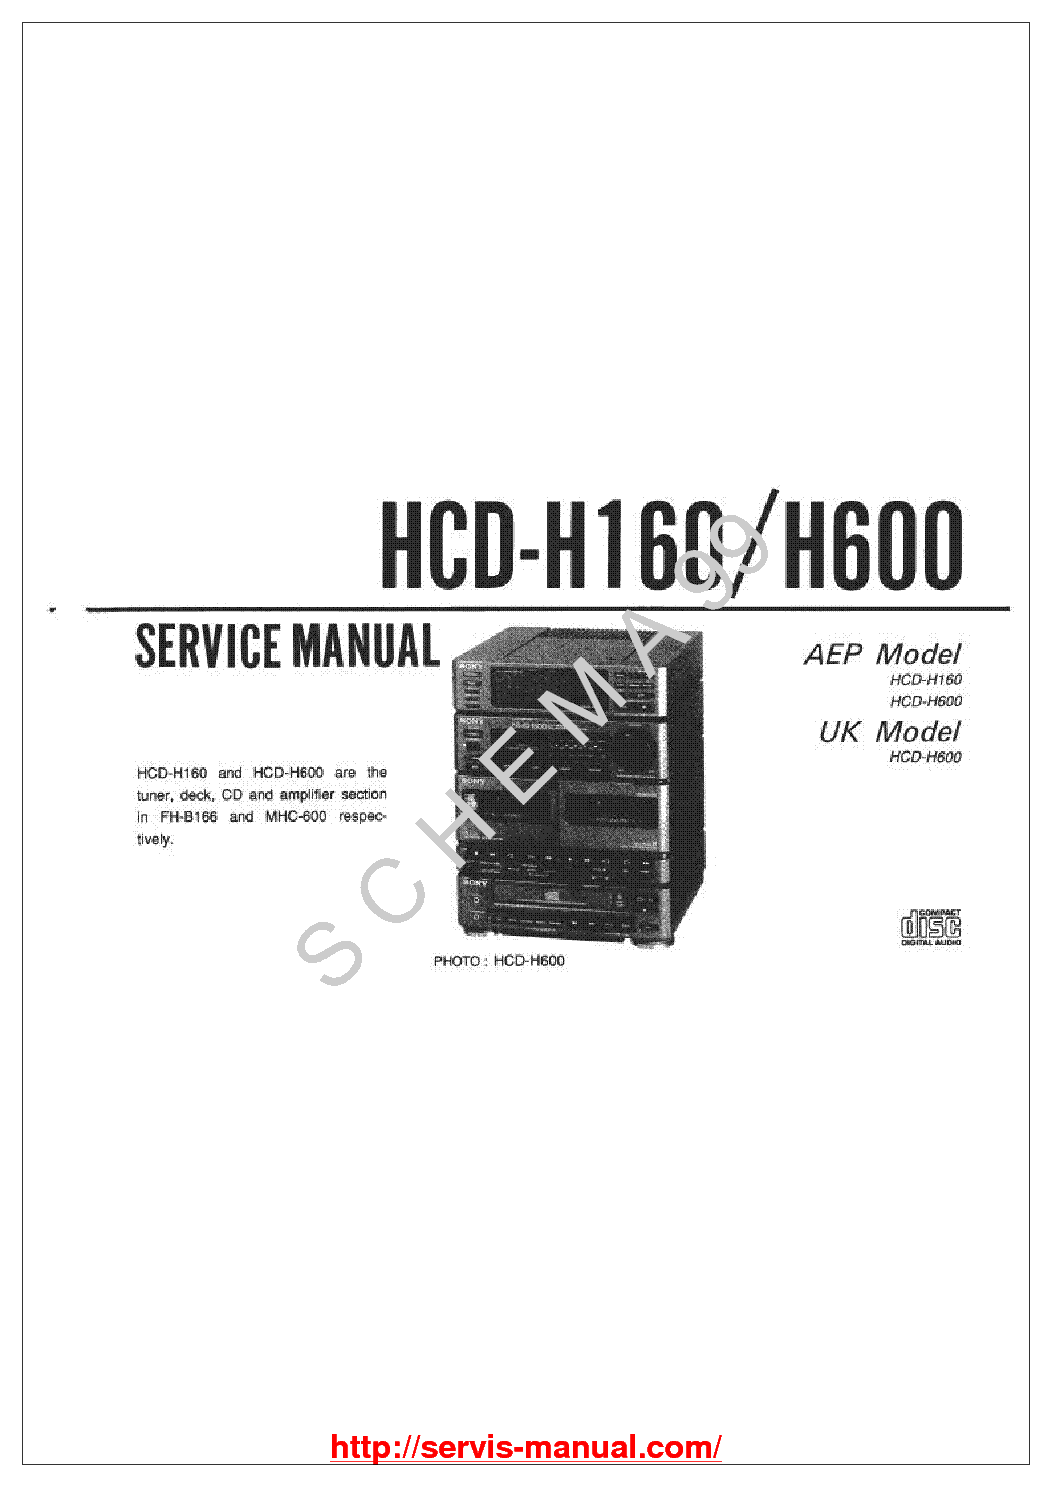 Sony h700 manual edinc the freddy files five nights at freddys by sony hcd rg270 cd deck receiver service manuals pdf format fandeluxe Images